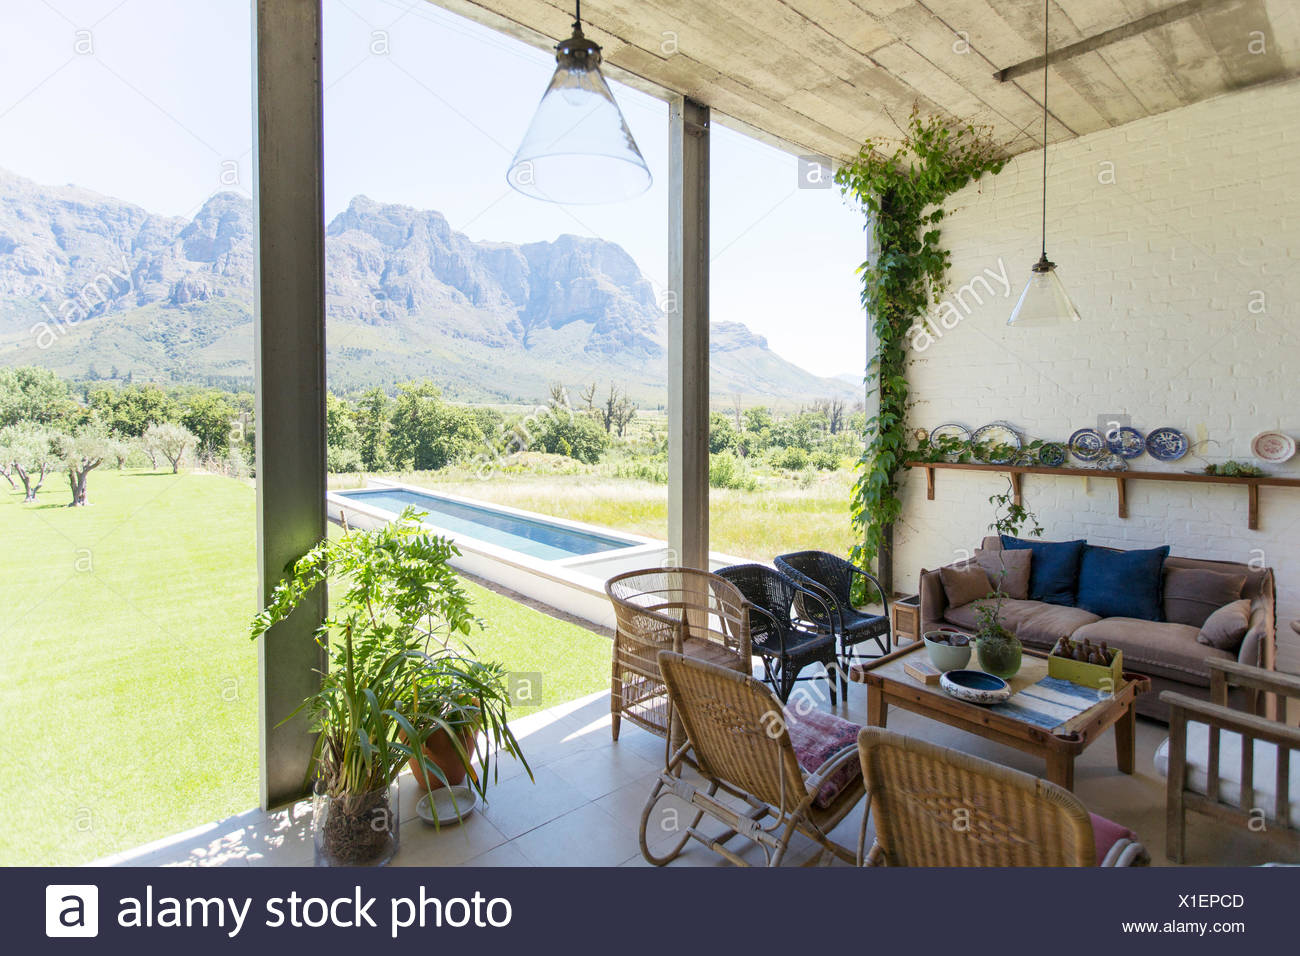 Living room overlooking backyard and landscape - Stock Image